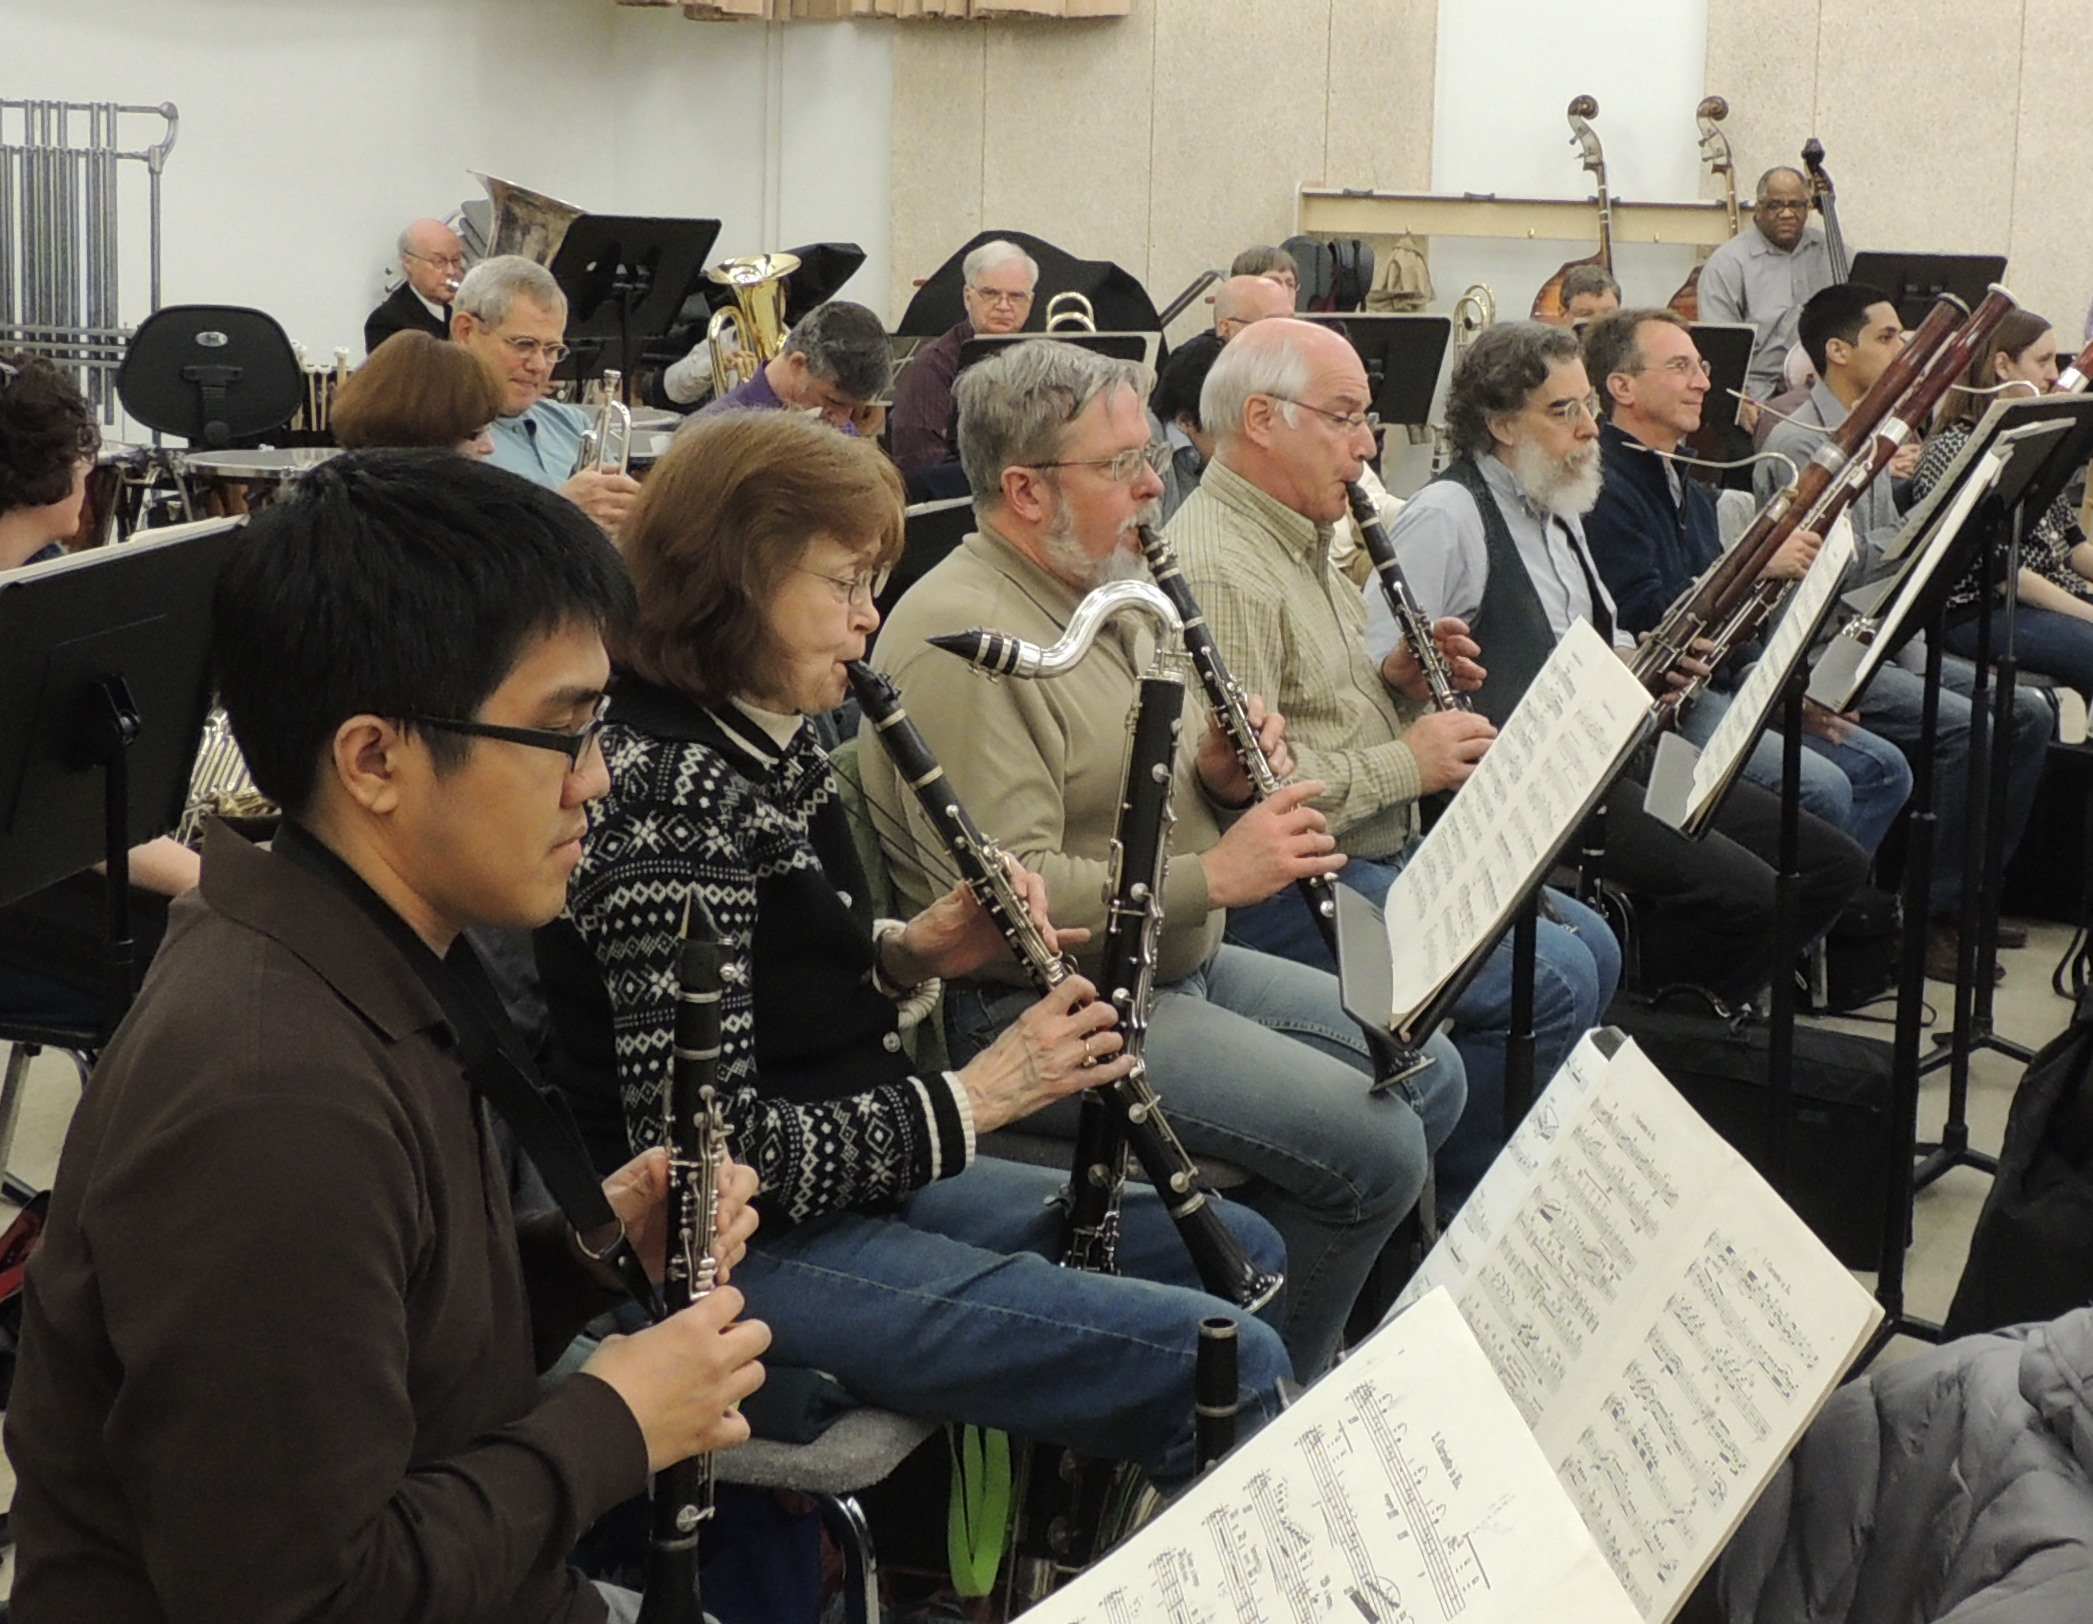 A typical rehearsal features several works from the standard symphonic repertoire.